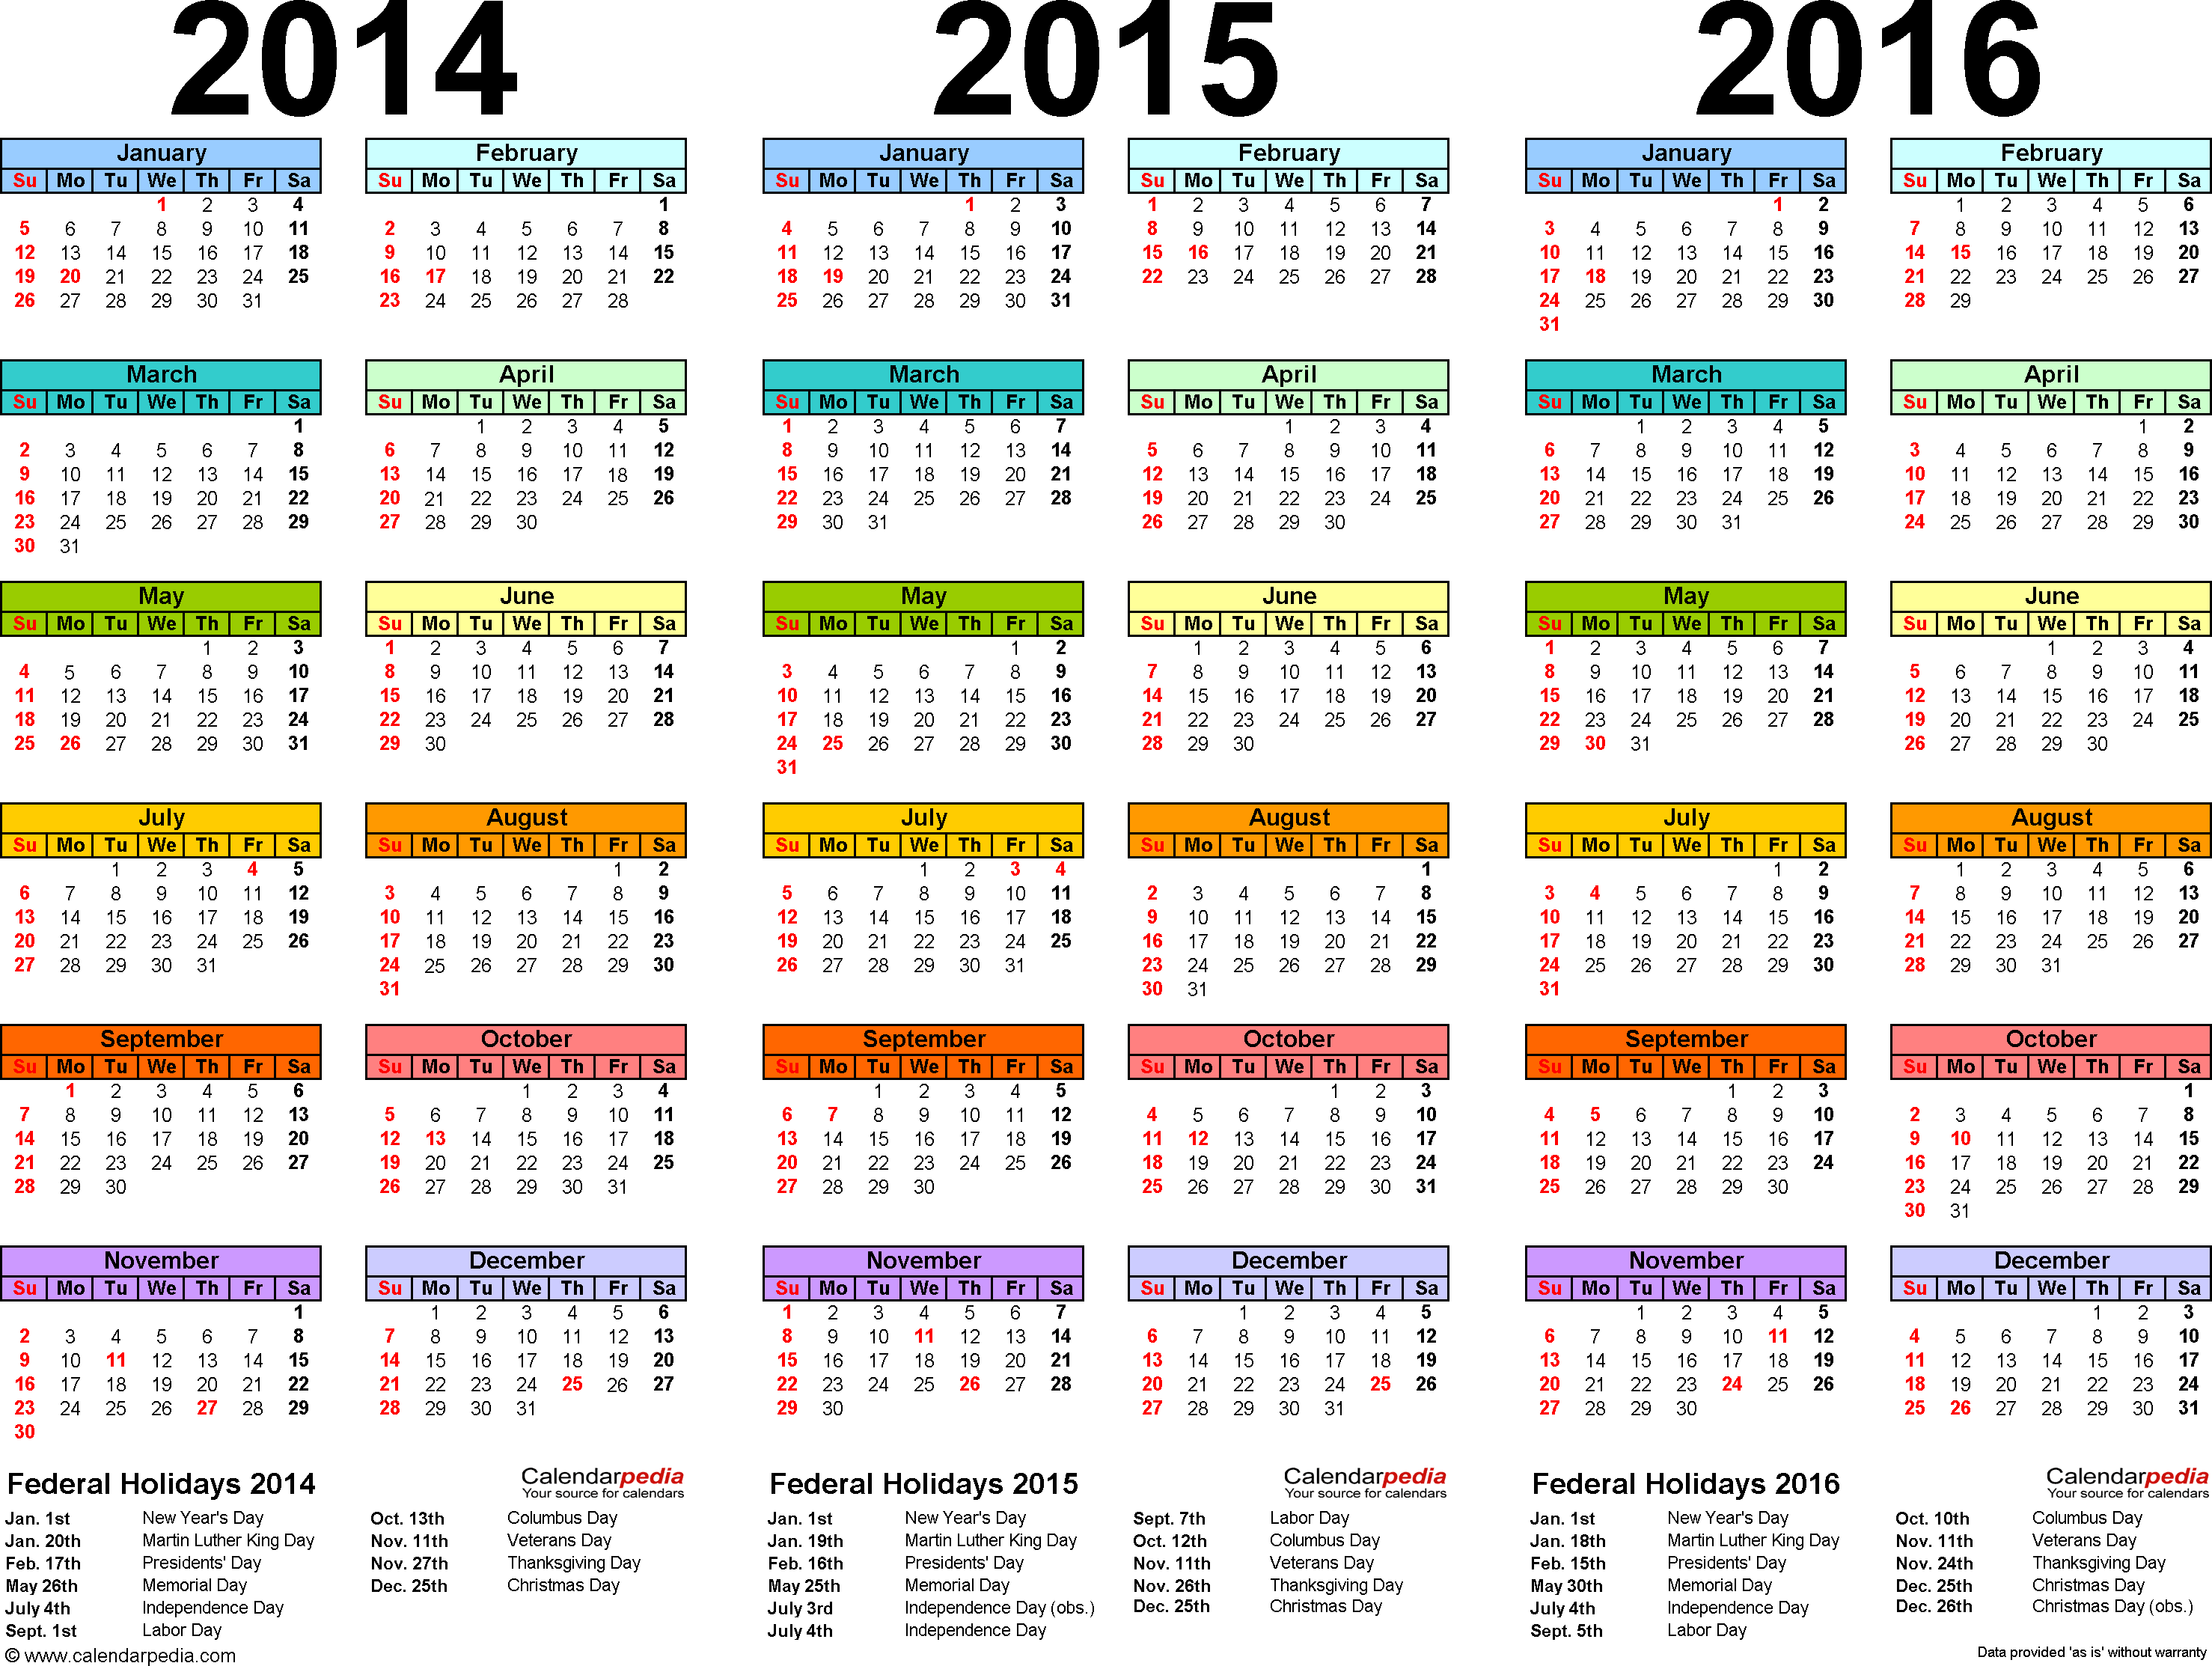 Template 1: PDF template for three year calendar 2014-2016 (landscape orientation, 1 page, in color)